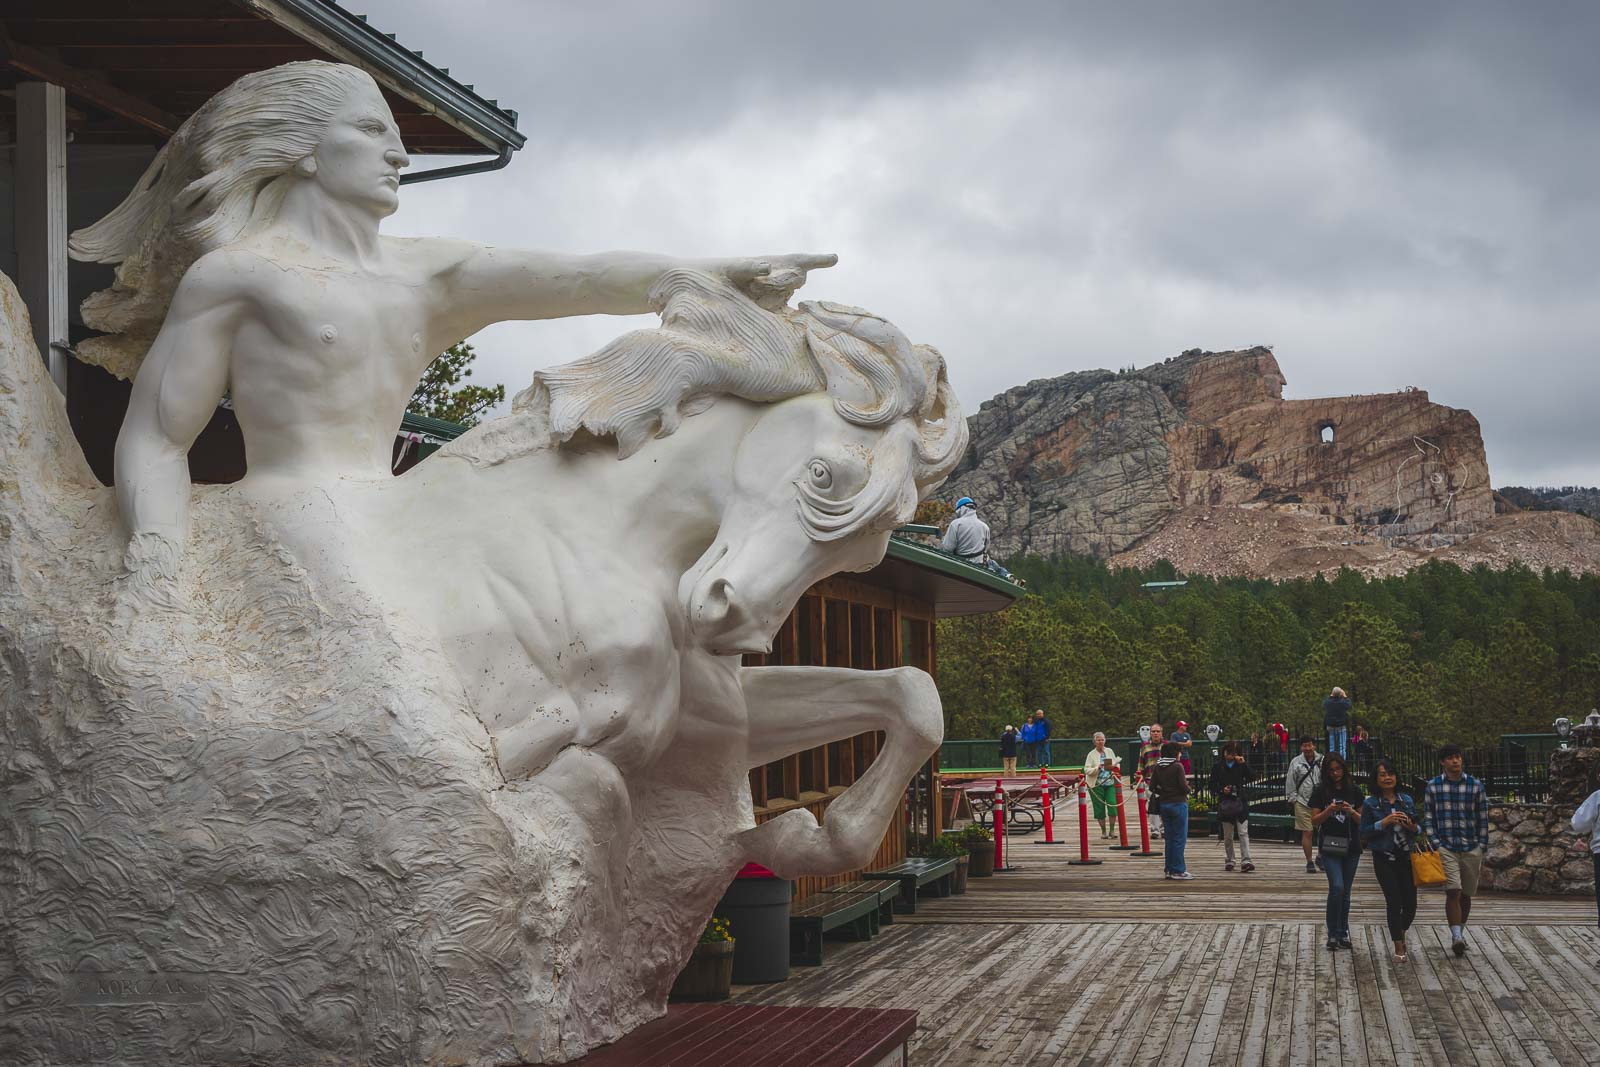 rendition of finished sculputure of crazy horse memoria